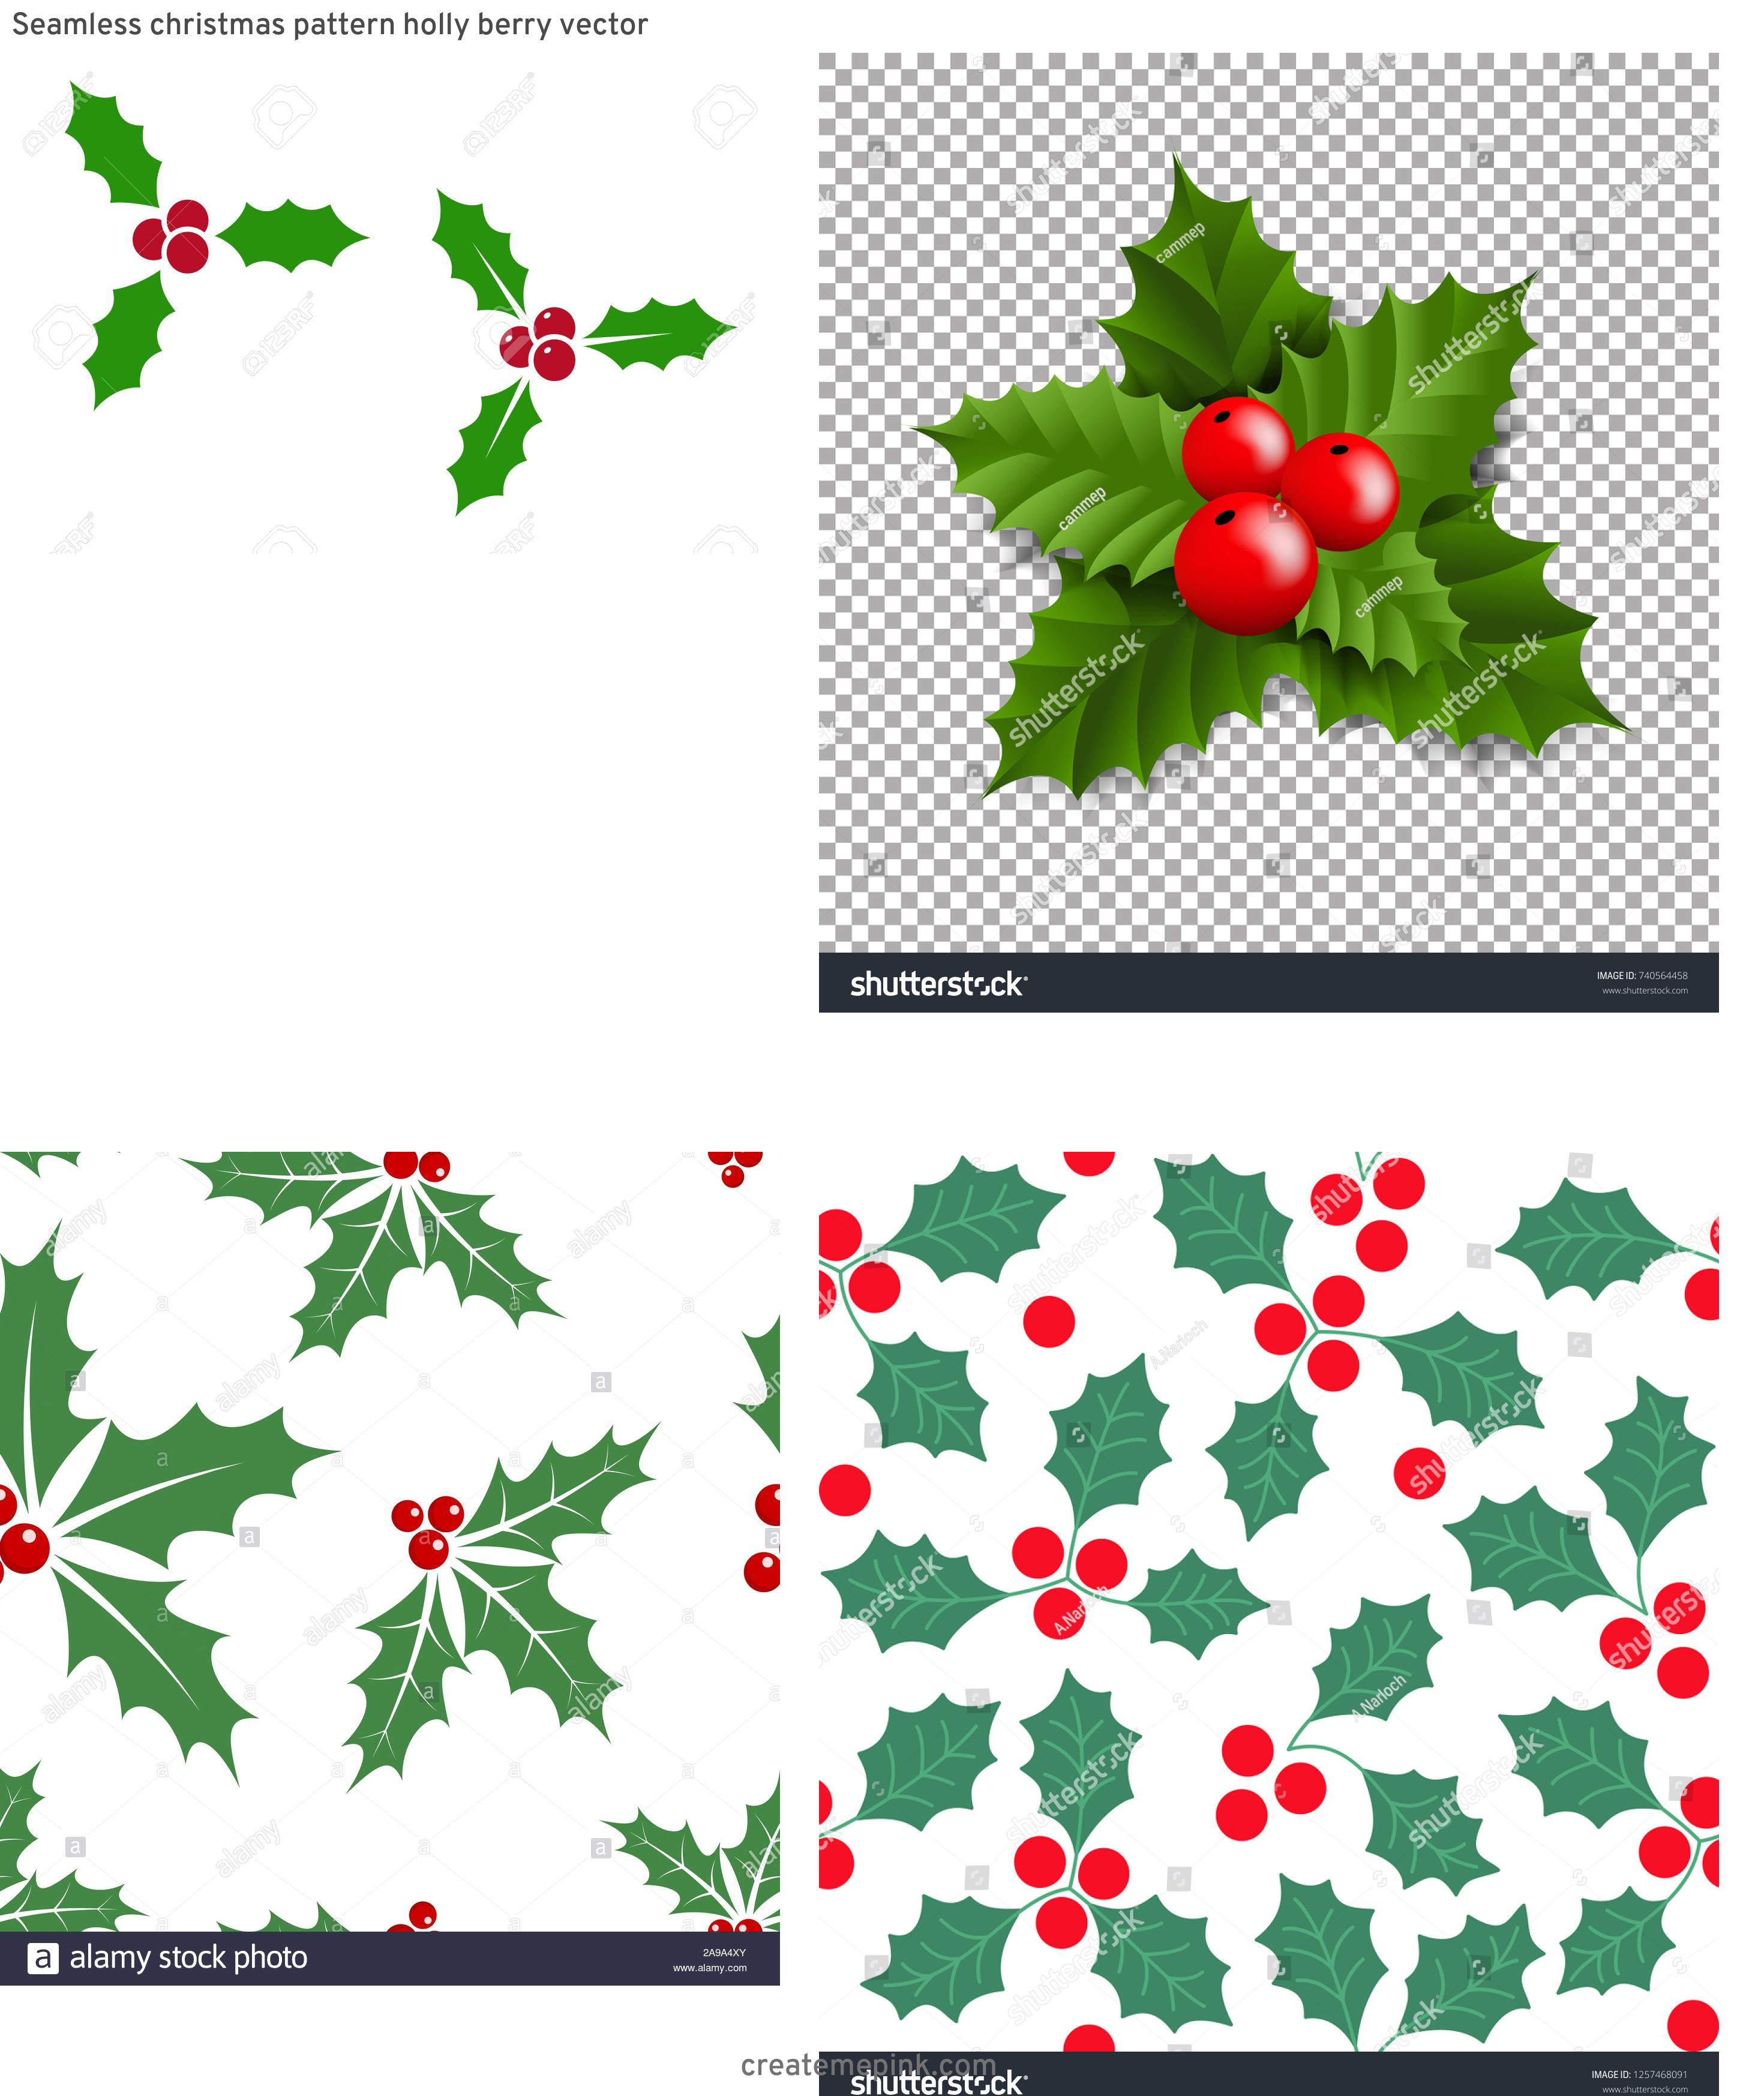 Holly Berry Vector Background: Seamless Christmas Pattern Holly Berry Vector